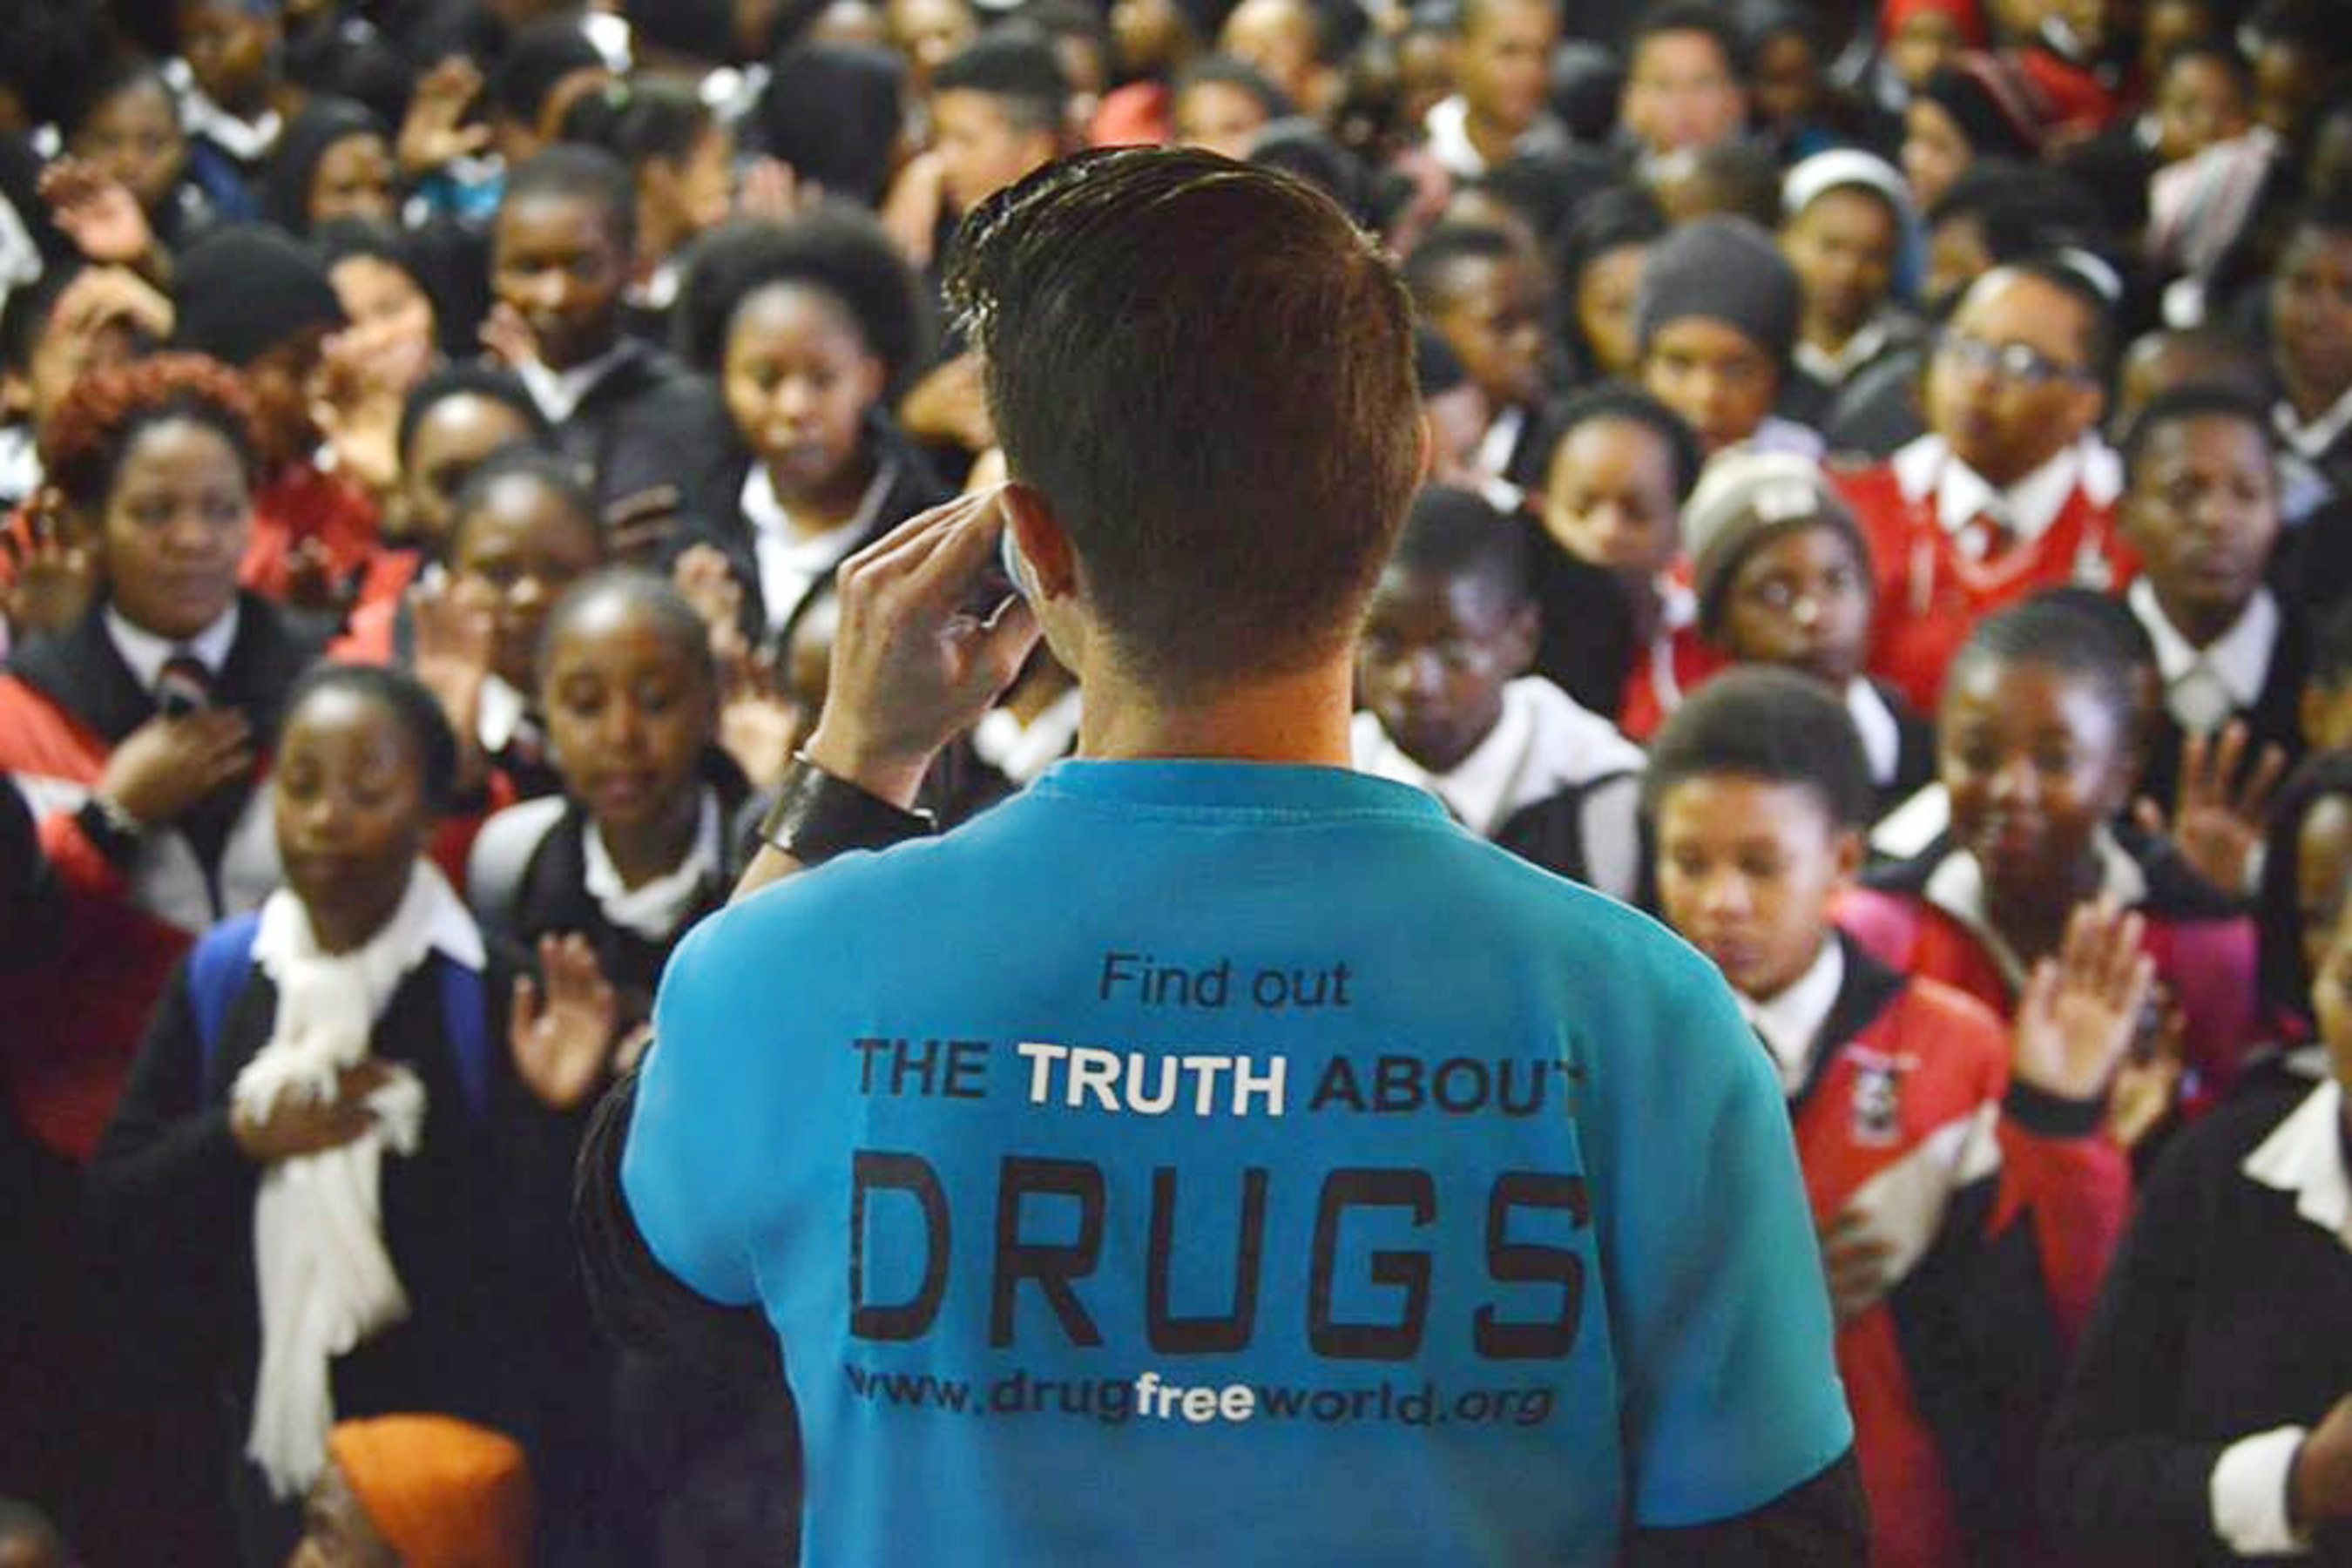 Drug-Free World Africa Coordinator Honored at South African Men of the Year Awards Celebration